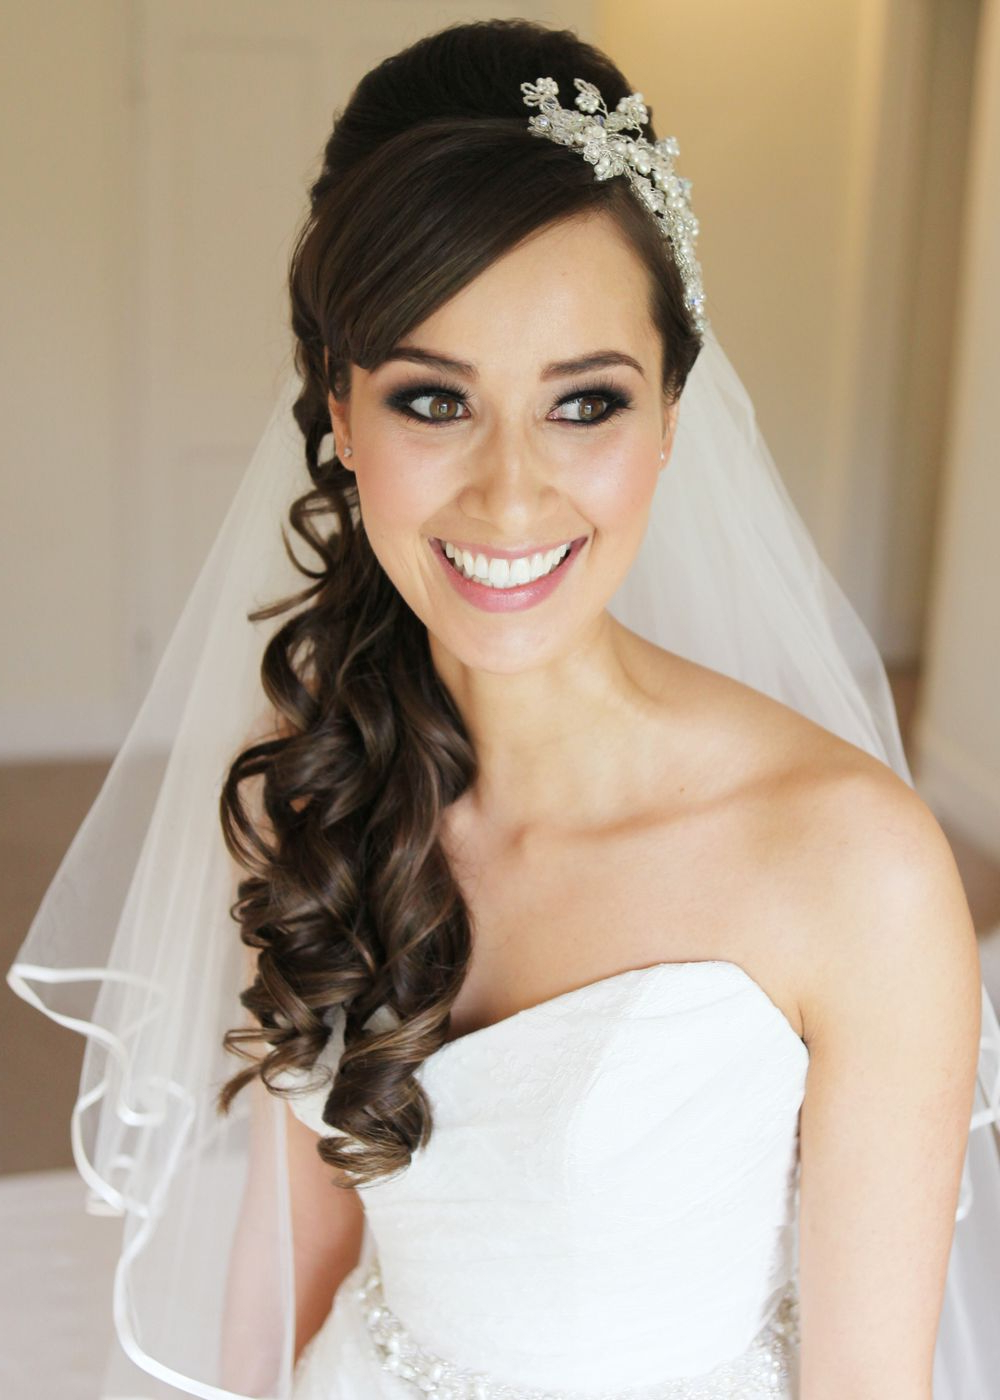 Best And Newest Side Curls Bridal Hairstyles With Tiara And Lace Veil Inside 15 Fabulous Half Up Half Down Wedding Hairstyles (View 3 of 20)